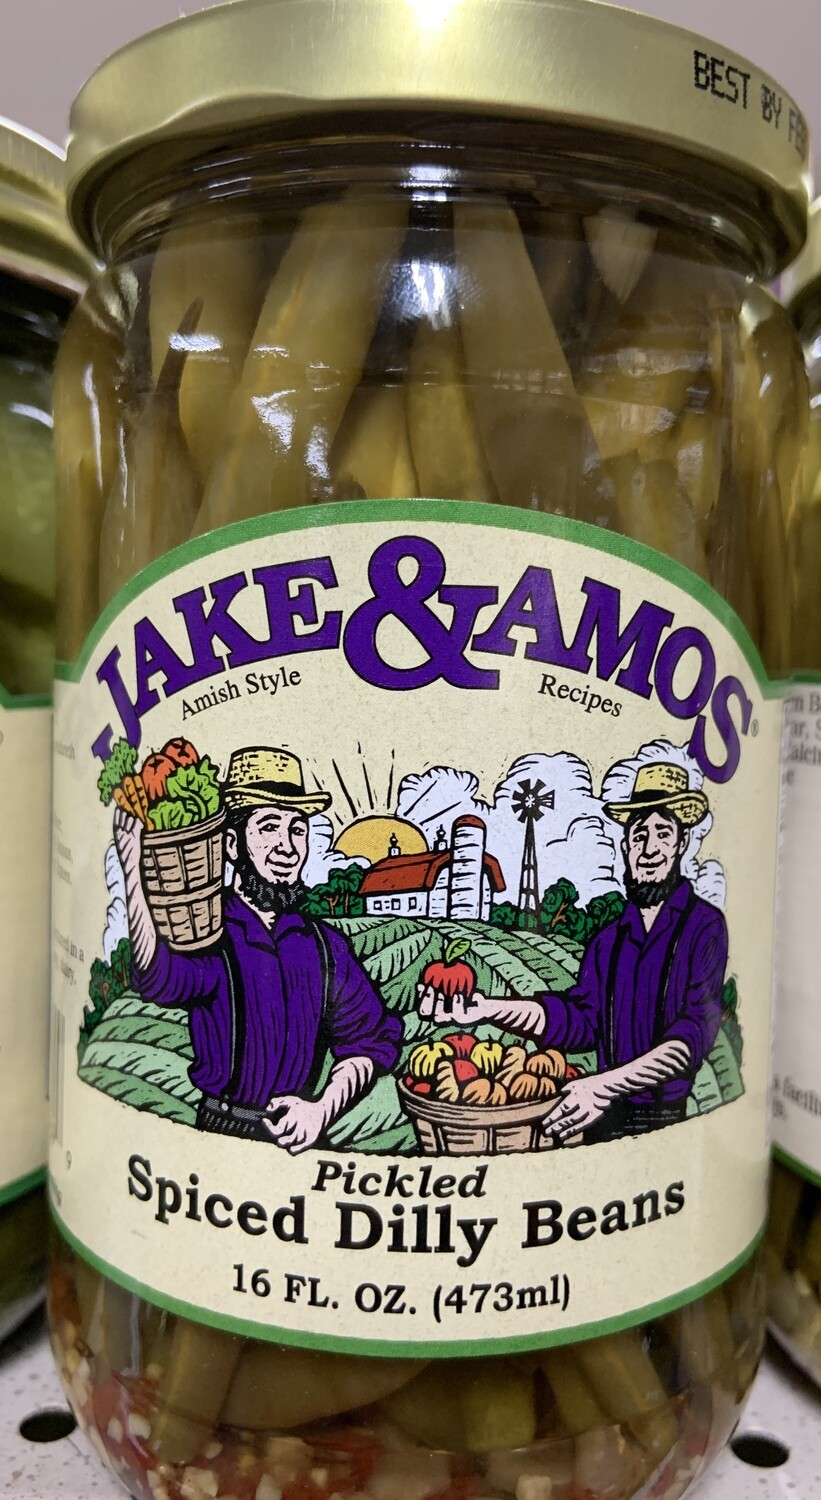 Jake & Amos Spiced Dilly Beans 16 oz